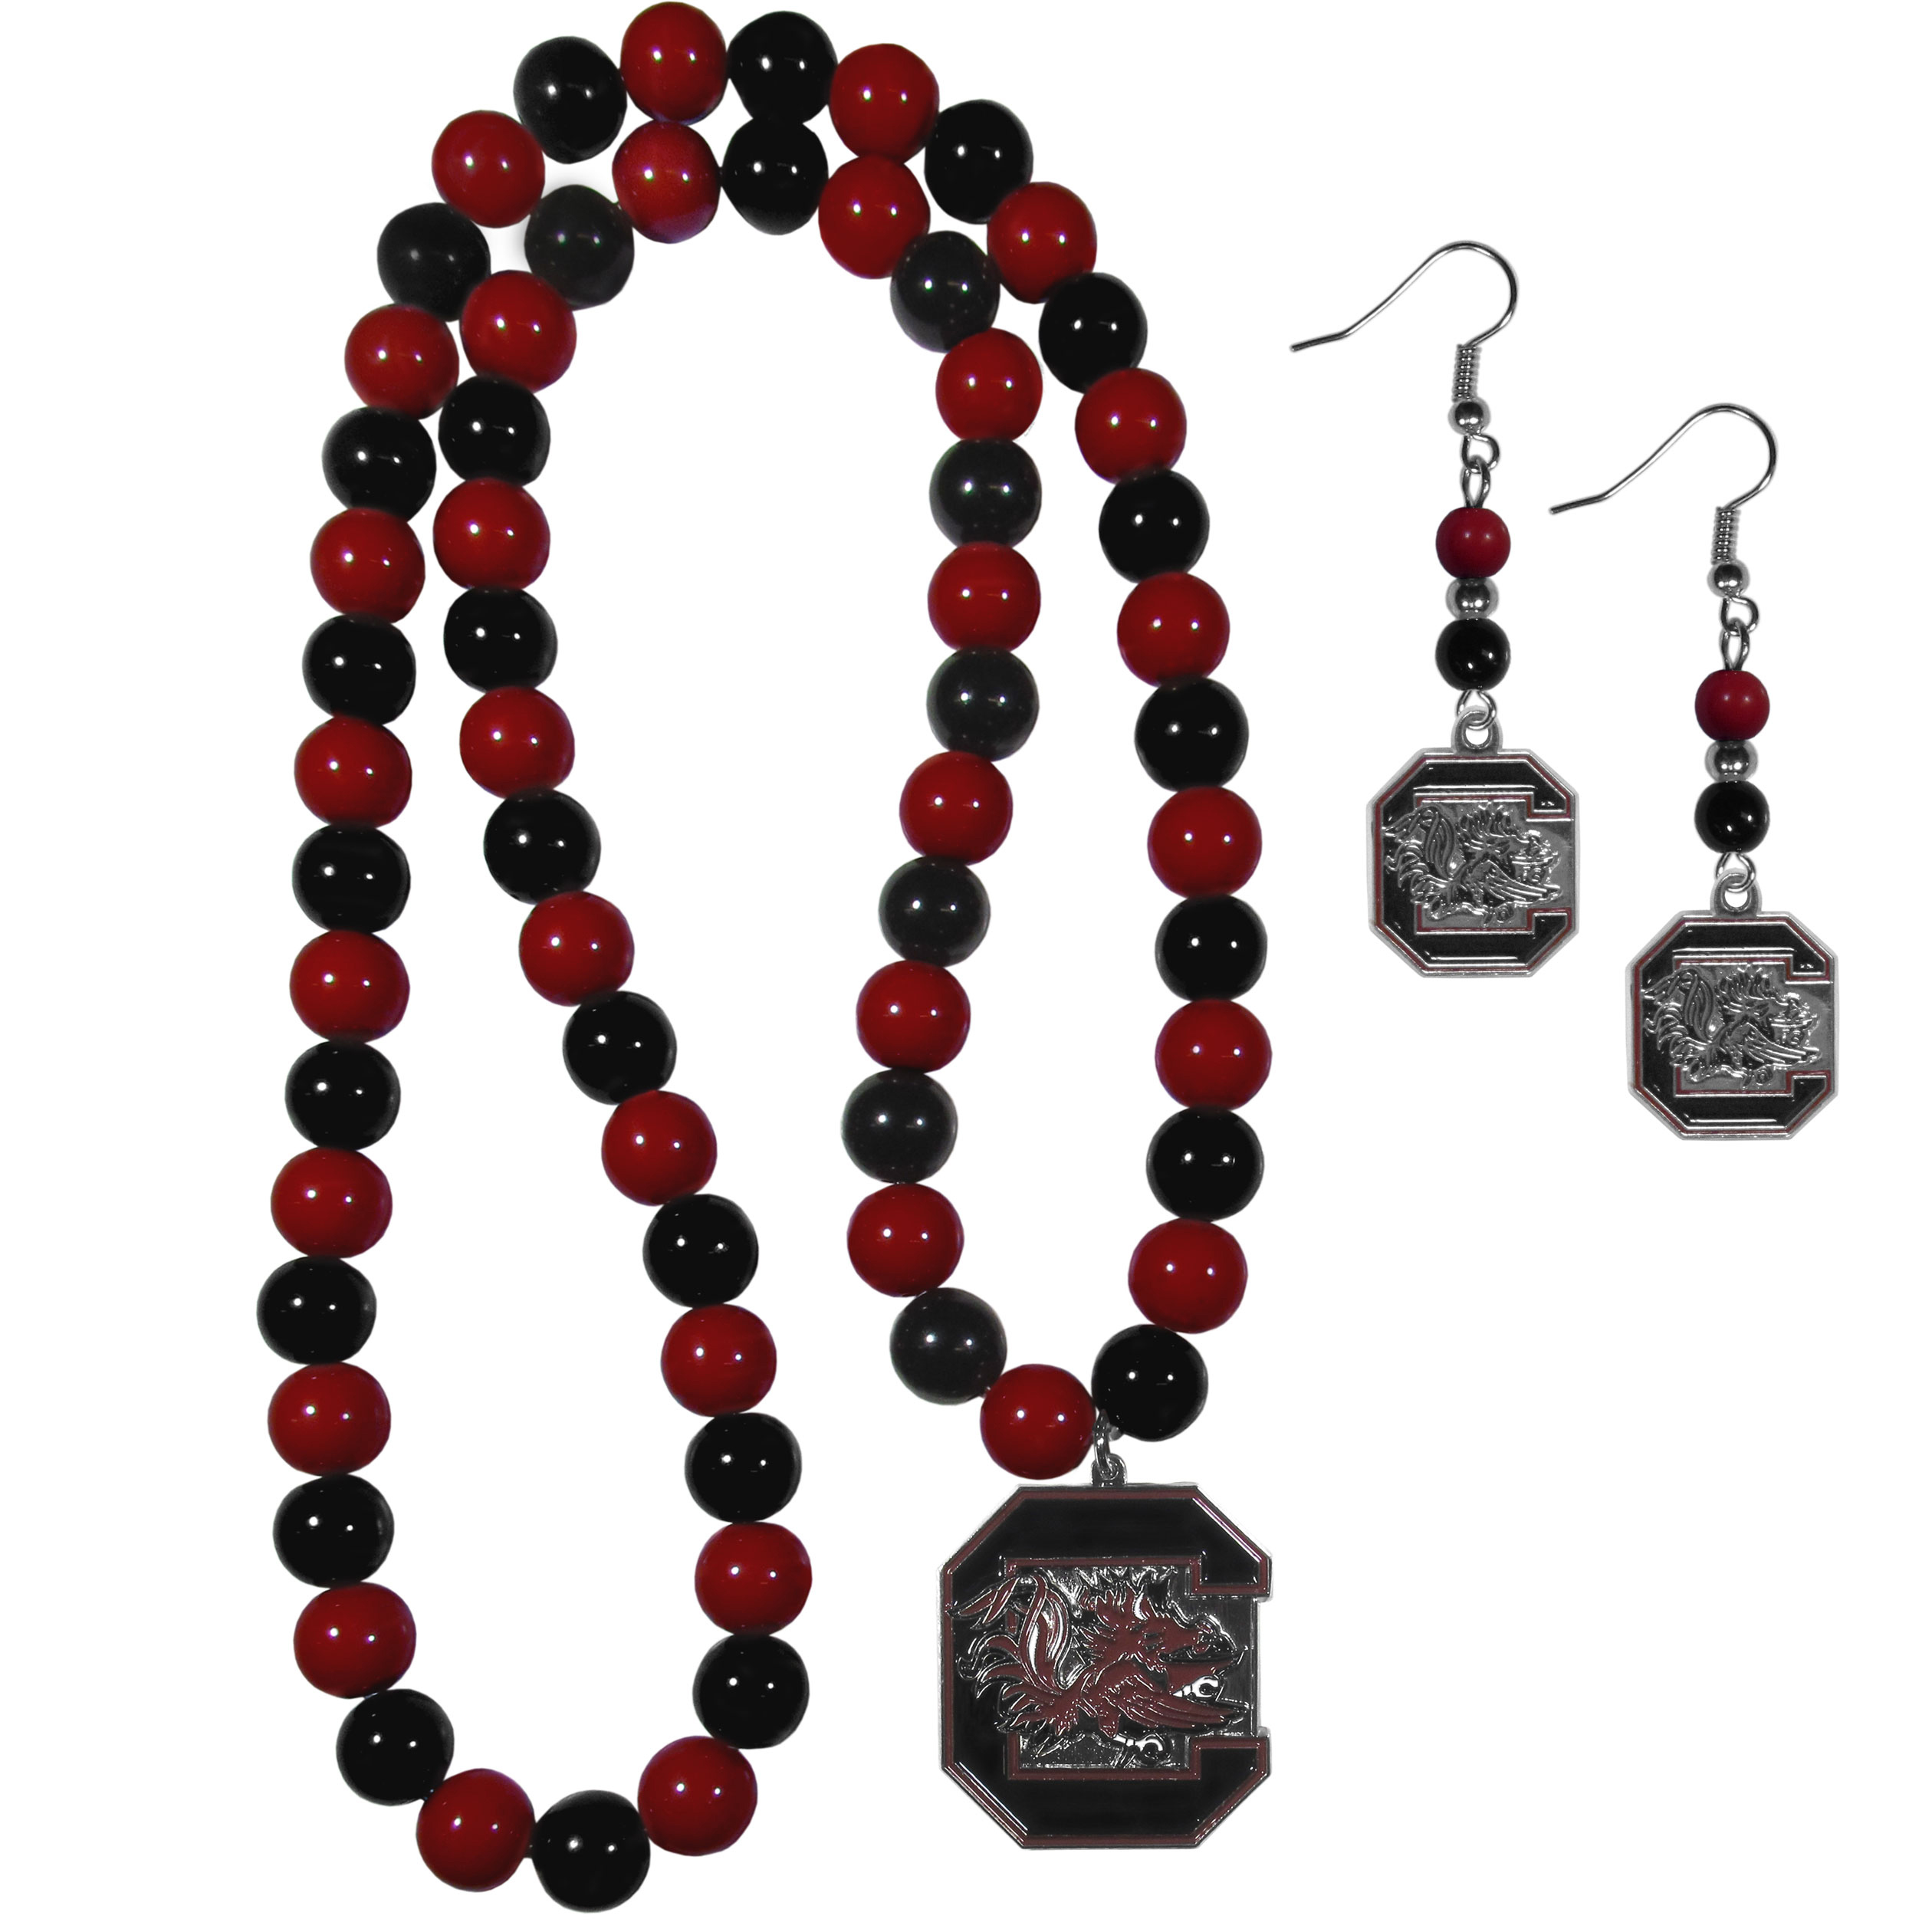 S. Carolina Gamecocks Fan Bead Earrings and Necklace Set - These fun and colorful S. Carolina Gamecocks fan bead jewelry pieces are an eyecatching way to show off your team spirit. The earrings feature hypoallergenic, nickel free fishhook post and 2 team colored beads with a beautifully carved team charm to finish this attractive dangle look. The mathcing bracelet has alternating team colored beads on a stretch cord and features a matching team charm.